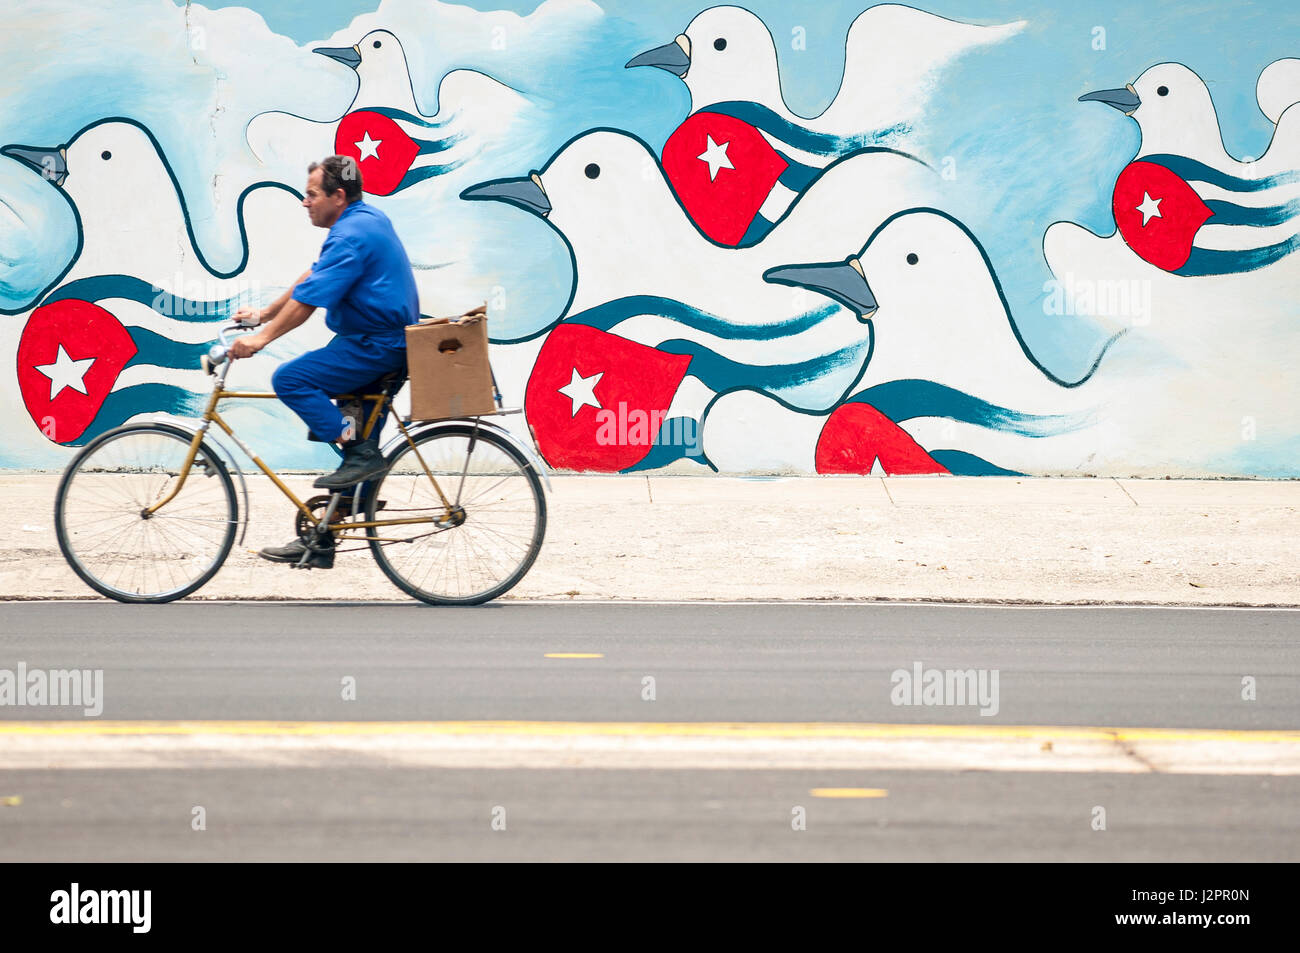 HAVANA - JUNE, 2011: A Cuban man on bicycle passes a colorful mural of propaganda featuring doves of peace emblazoned - Stock Image